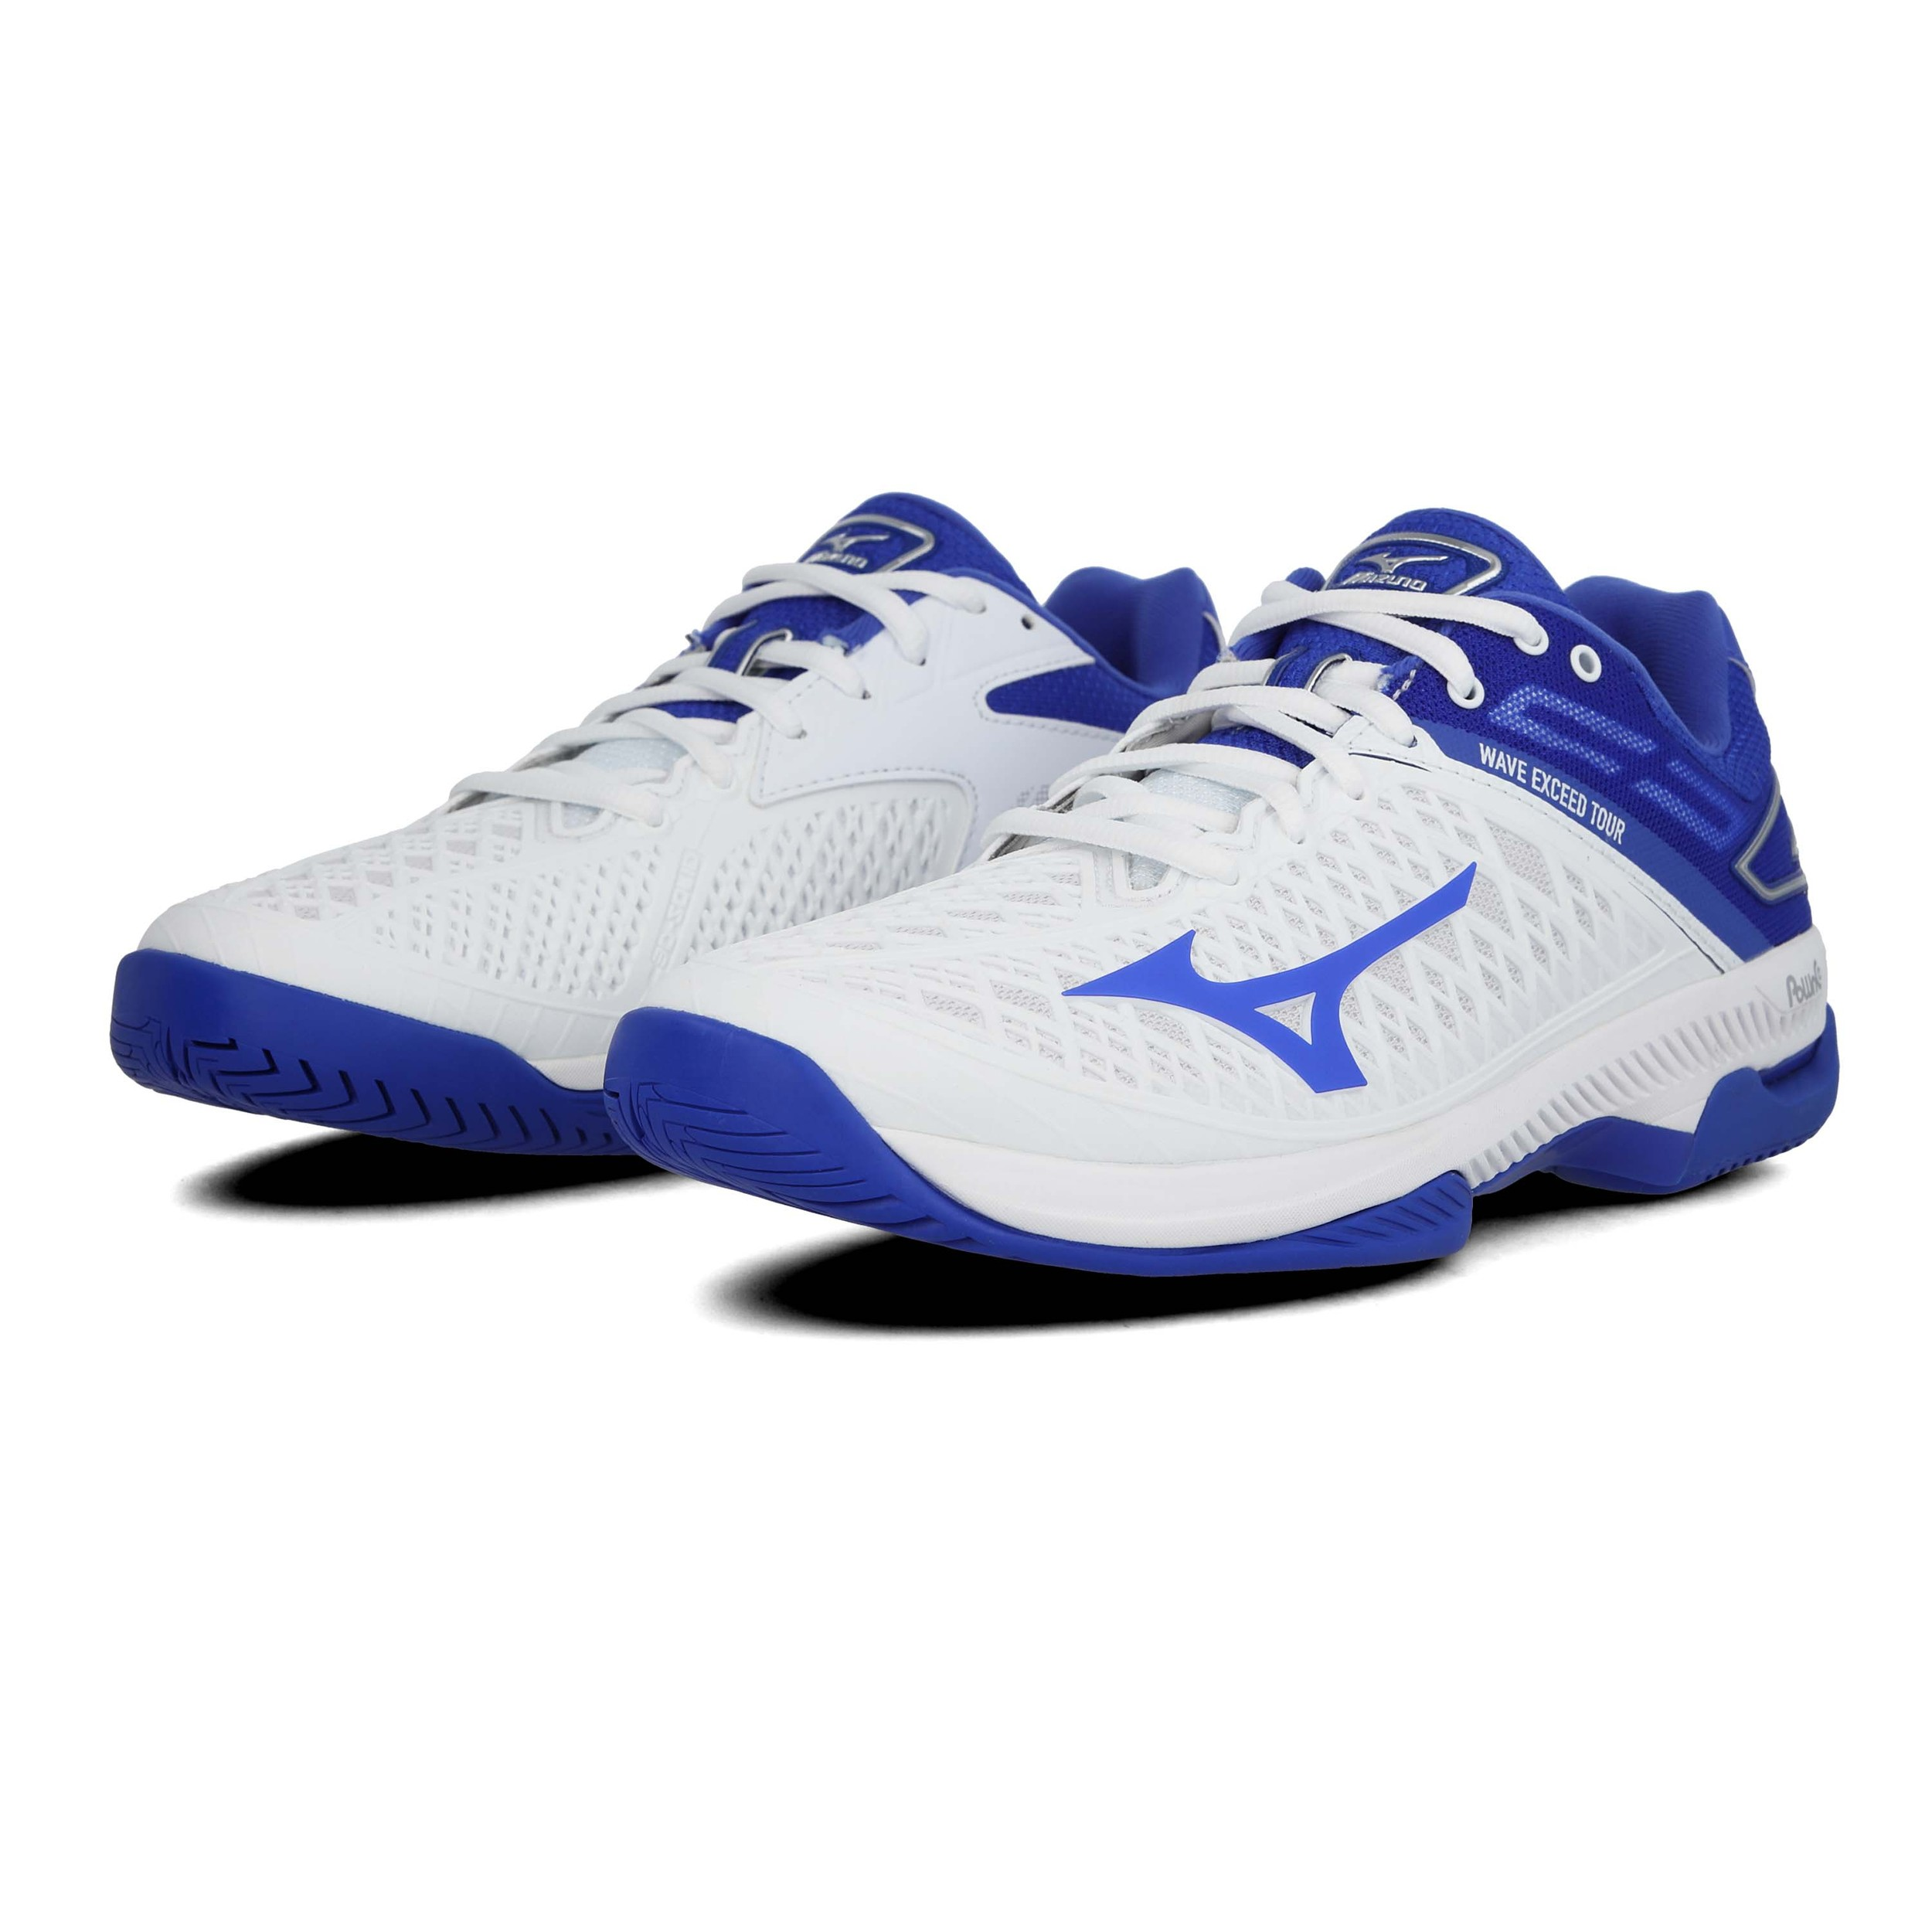 Mizuno Wave Exceed Tour 4 AC Women's Tennis Shoes  - SS20